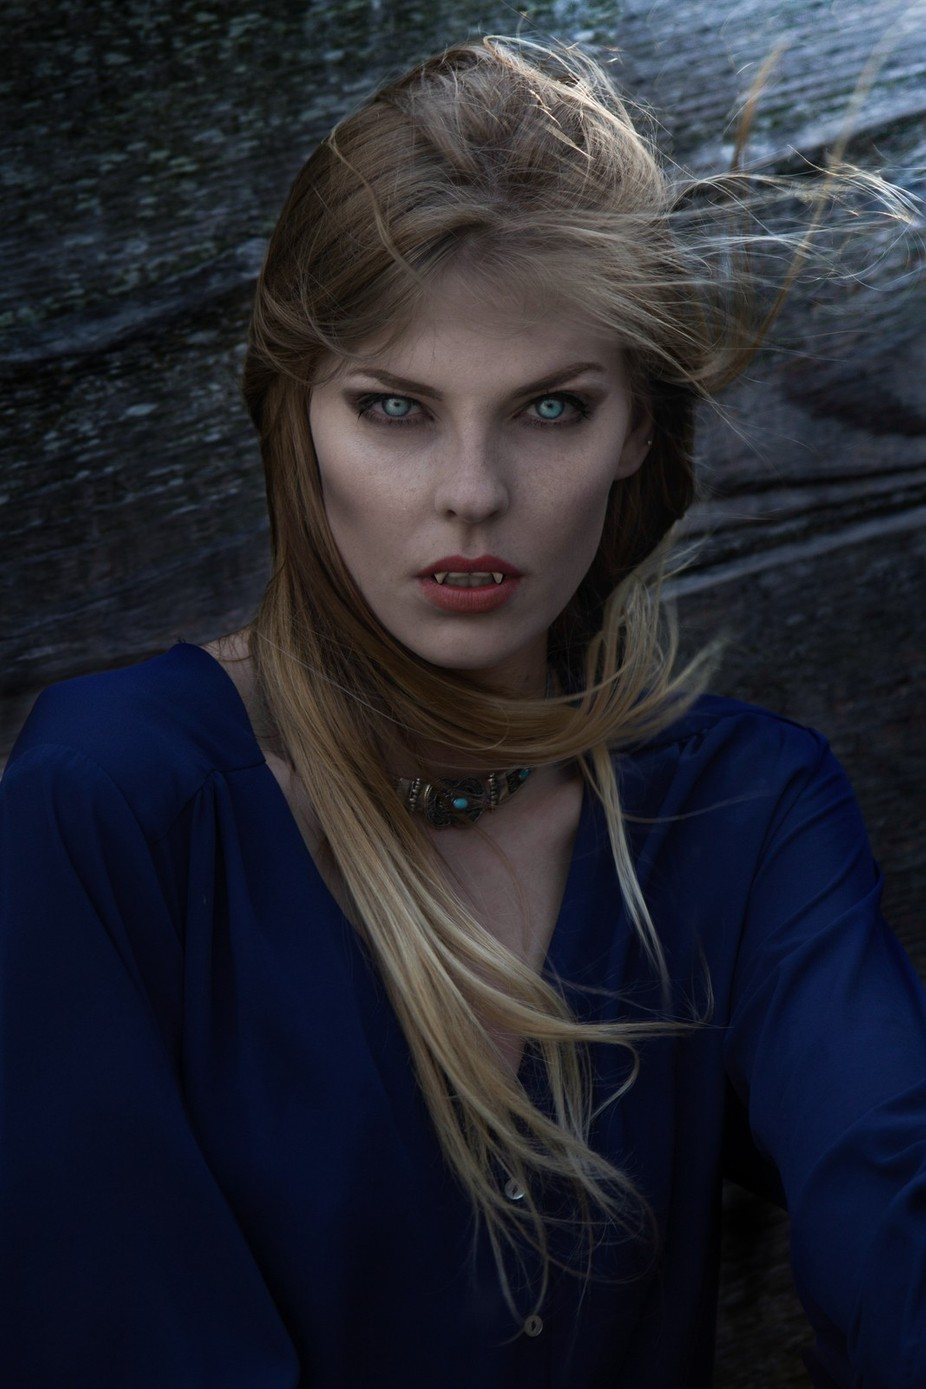 vamp by jeanettekbbernholm - Halloween Photo Contest 2017